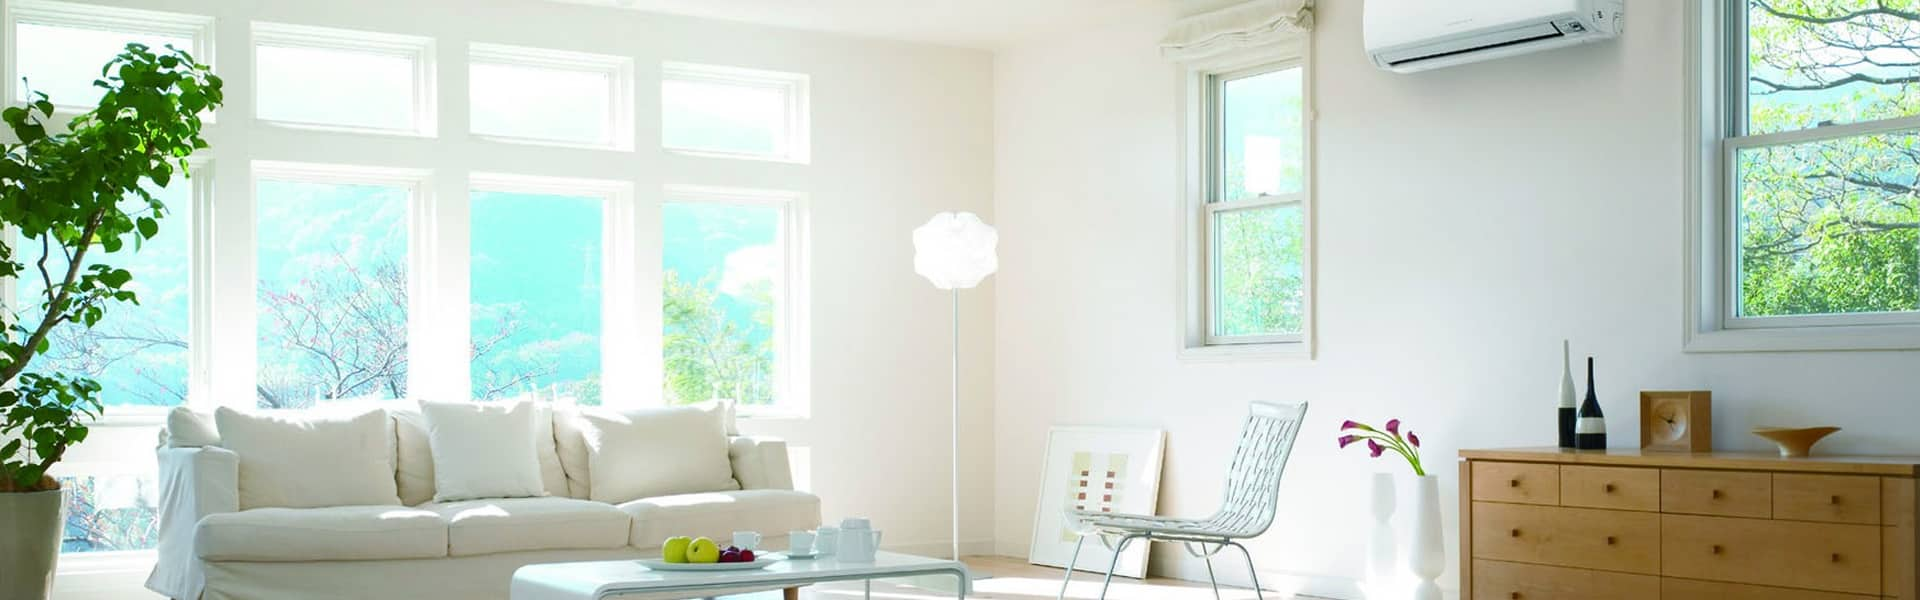 air conditioning living room